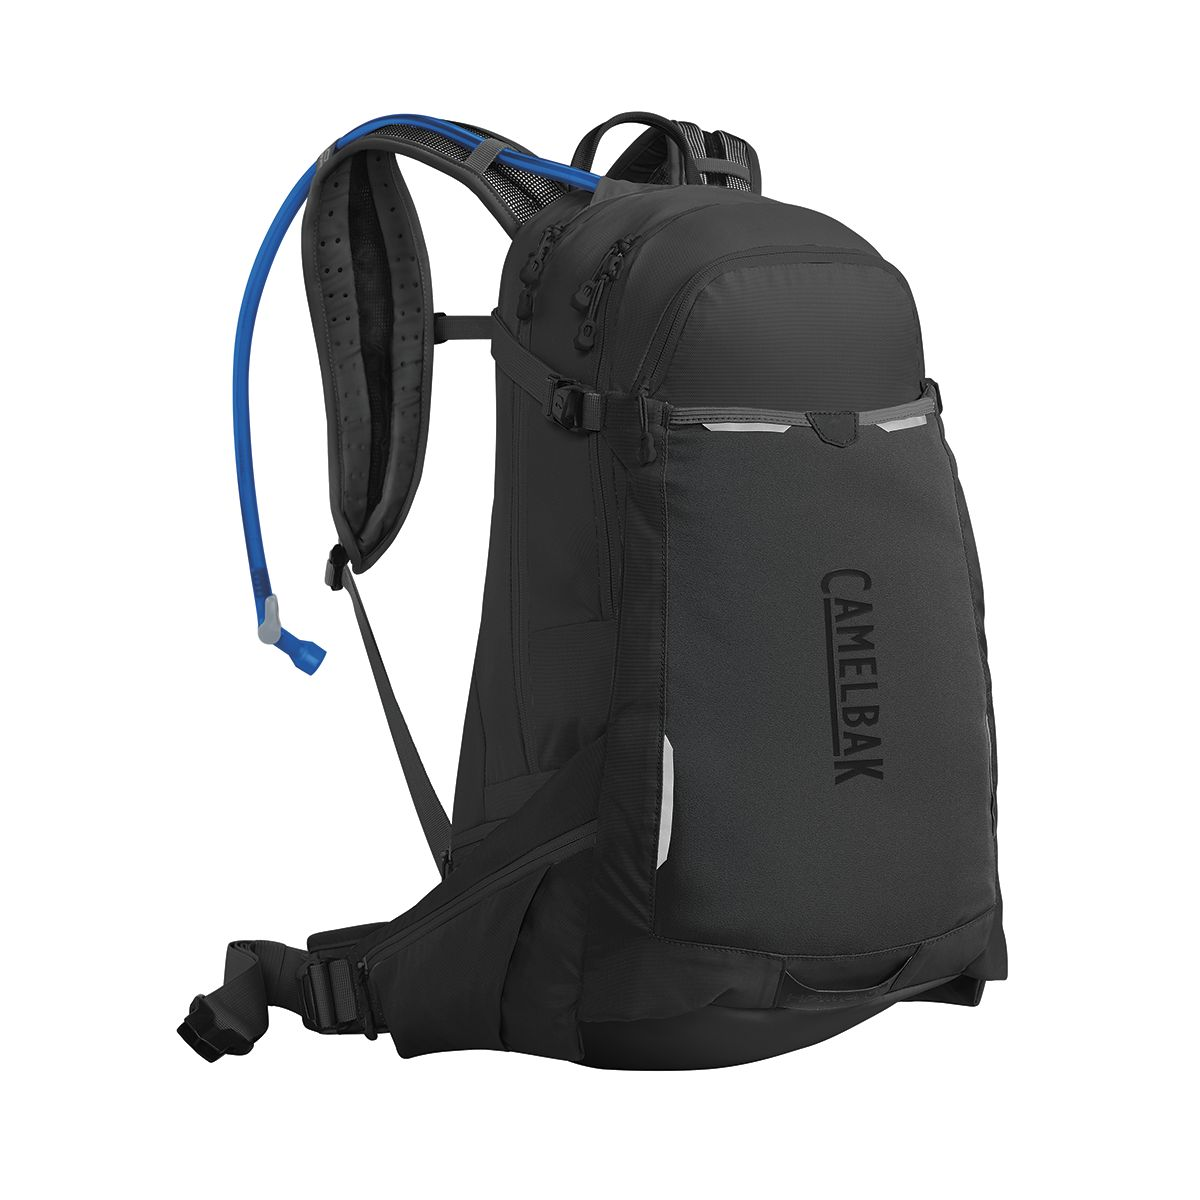 H.A.W.G. LR 20 cycling backpack